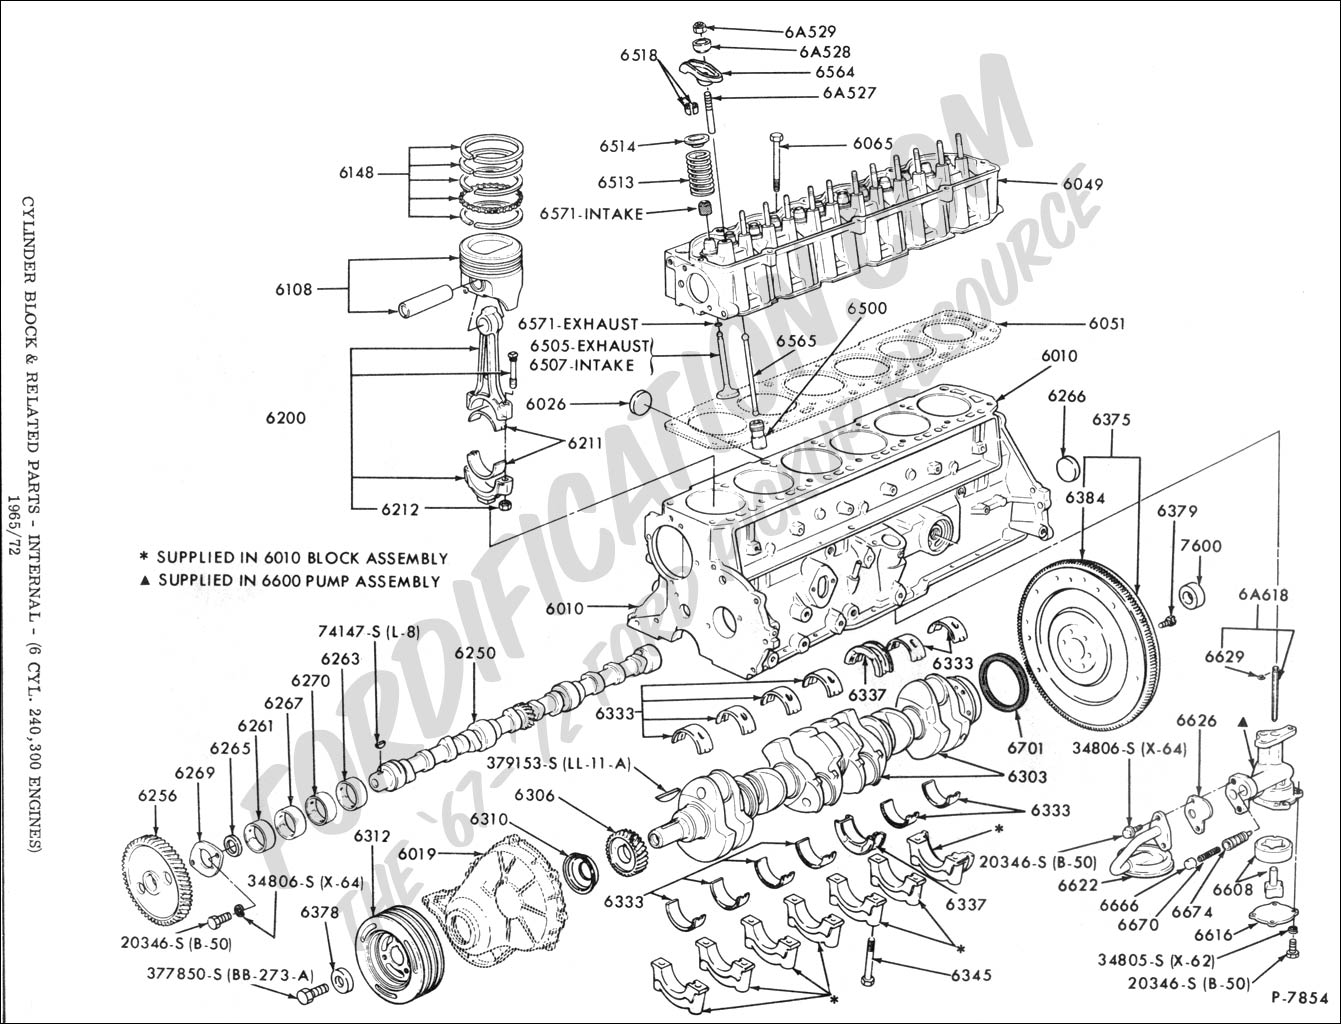 engine wiring diagrams 2001 chevy silverado 1500 fuel pump diagram 250 inline 6 engines 5 3